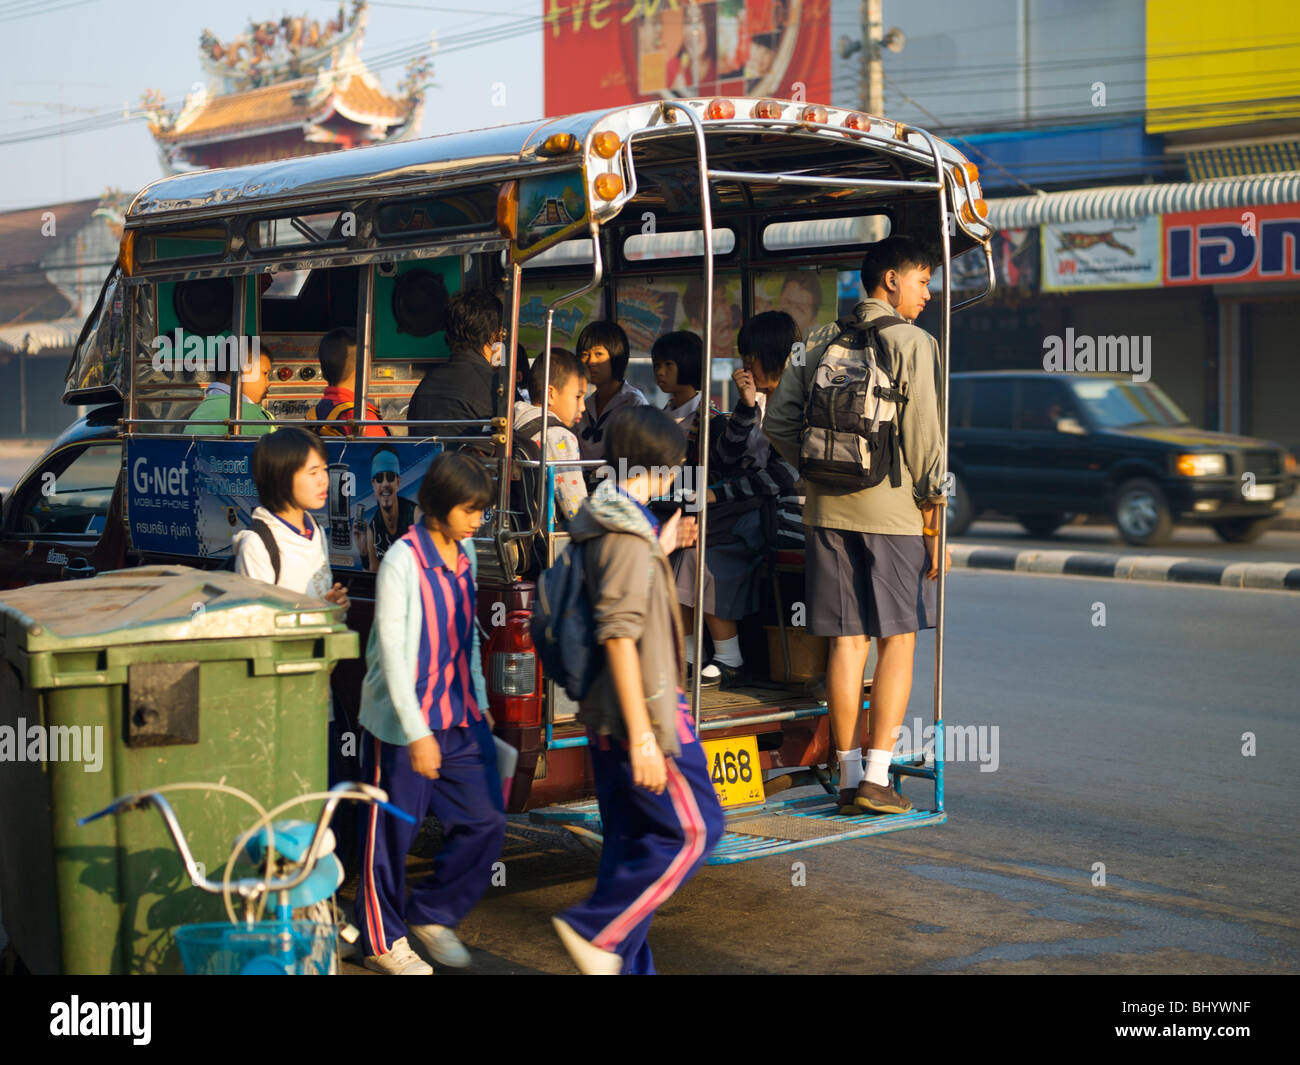 School children in udon thani thailand boarding a Songthaew taxi bus - Stock Image